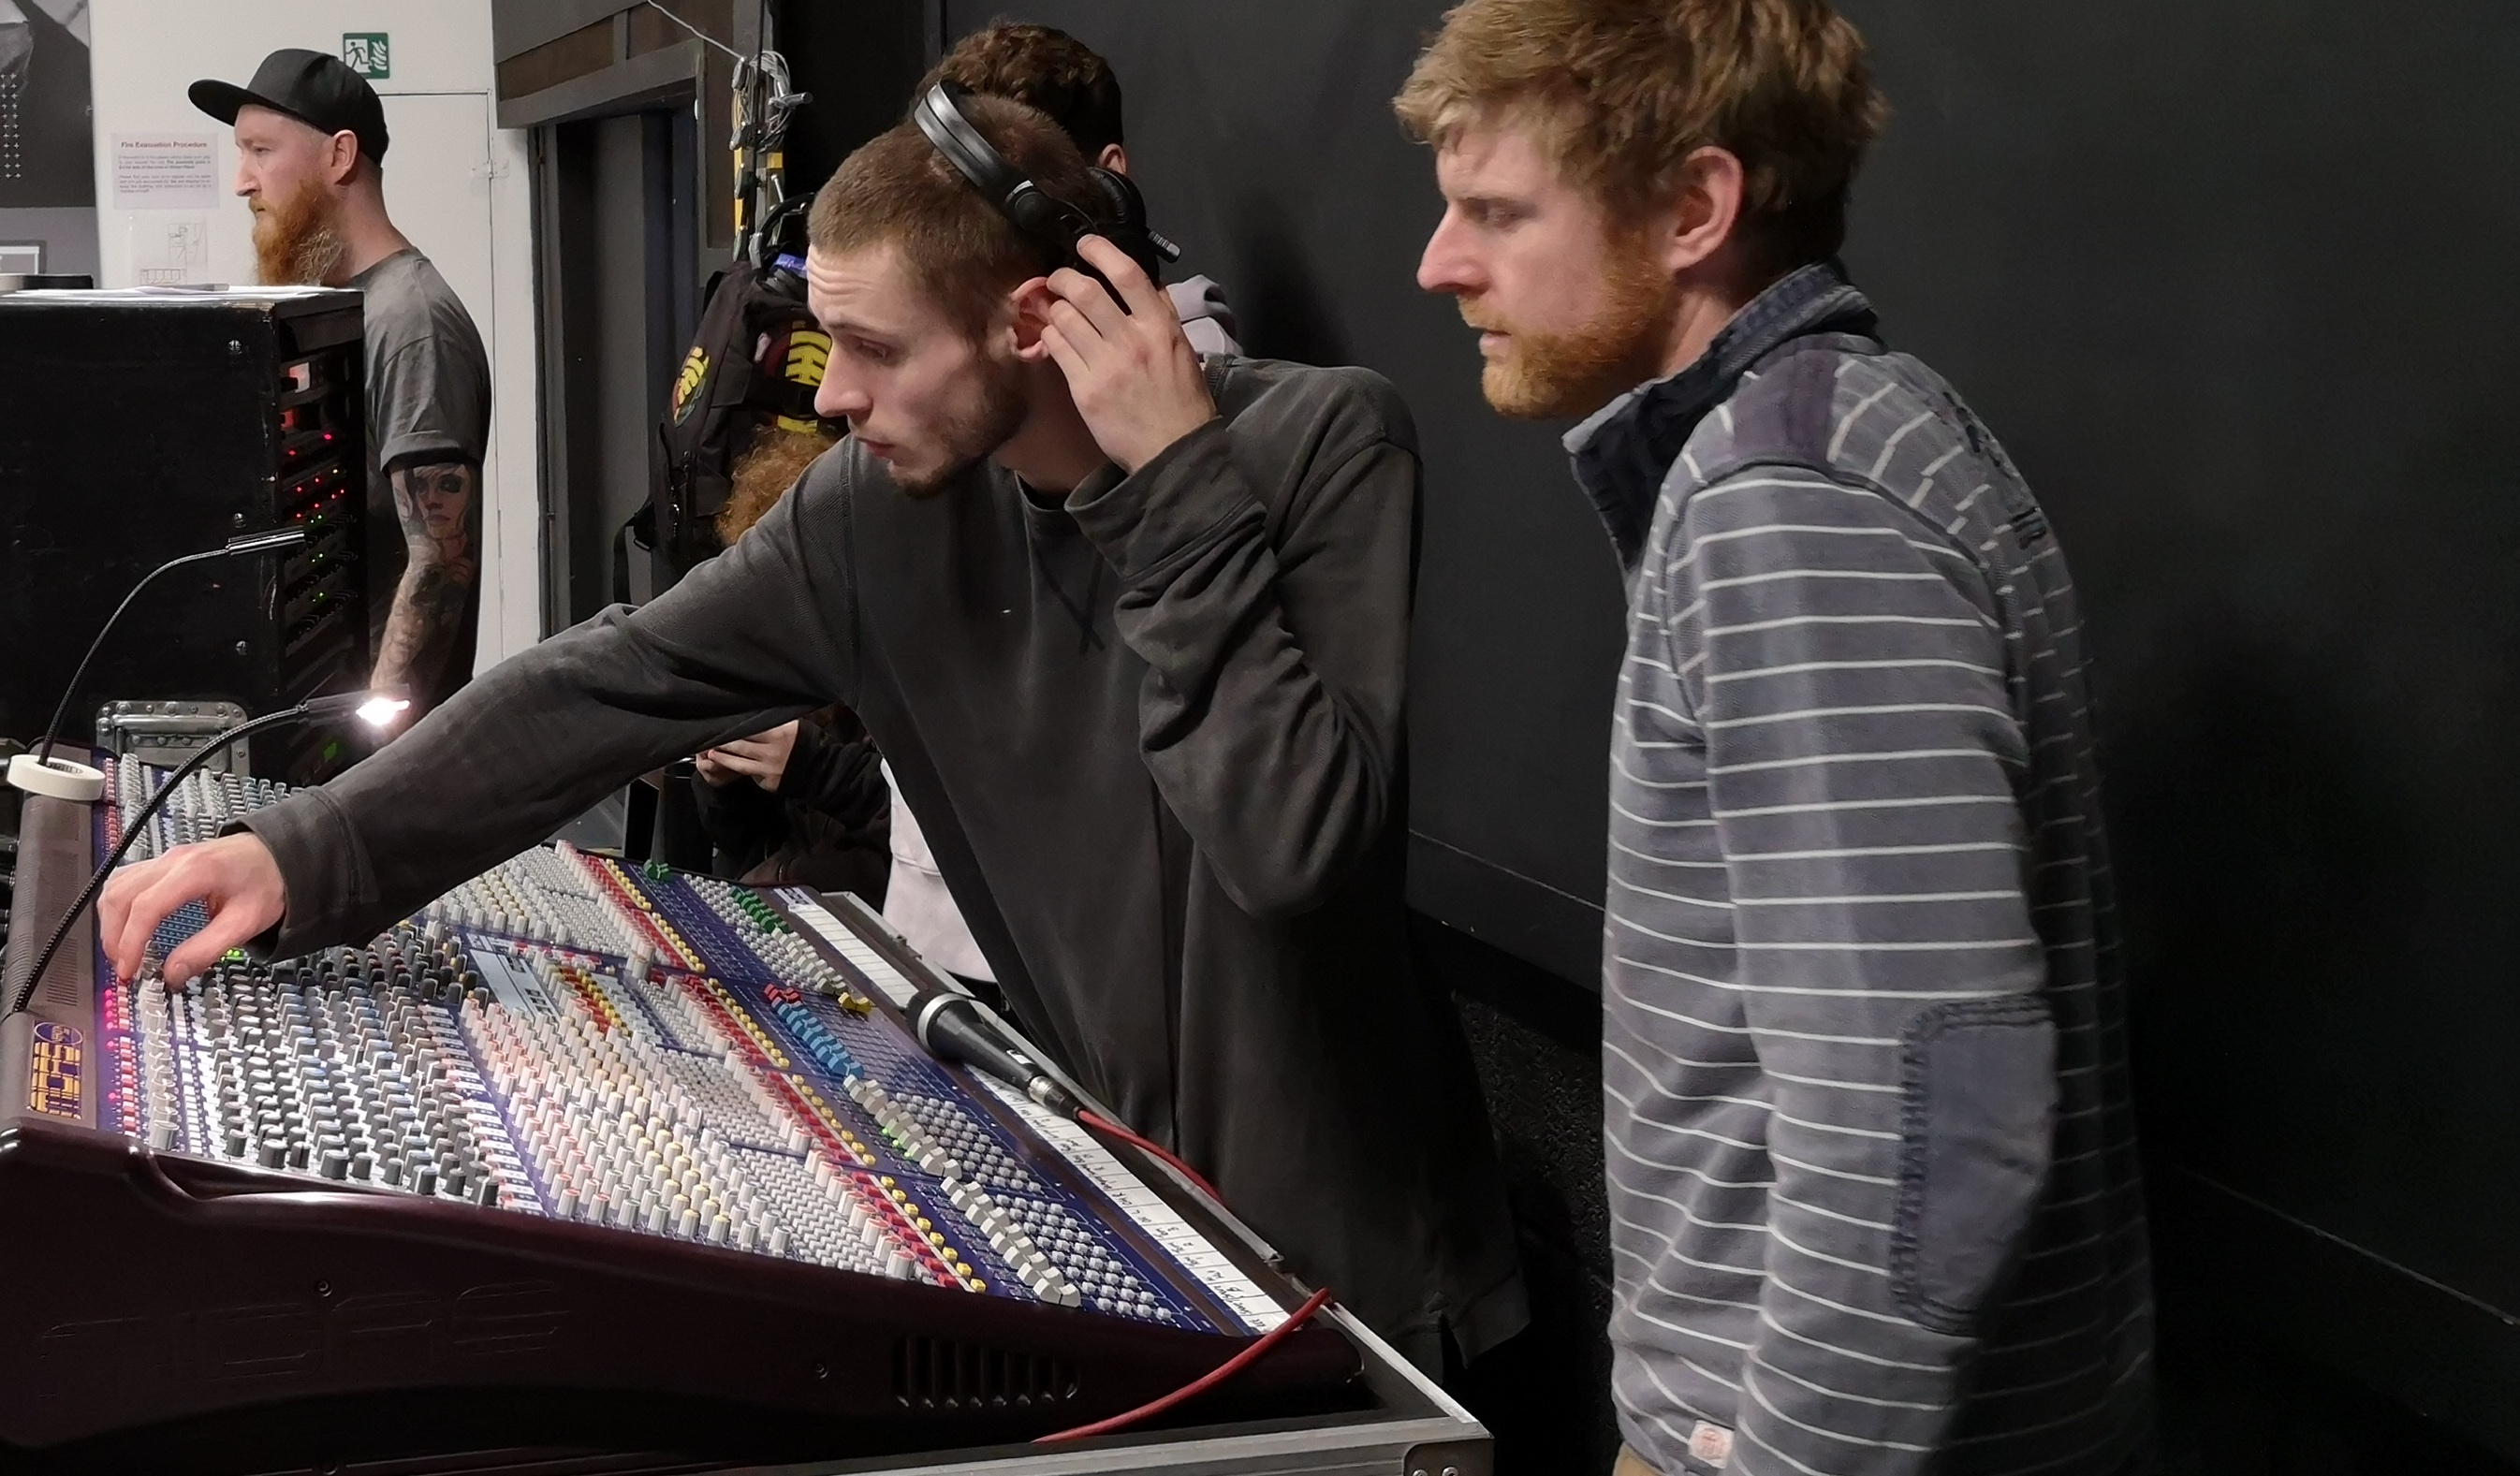 Live sound degree students practice their skills on a mixing desk